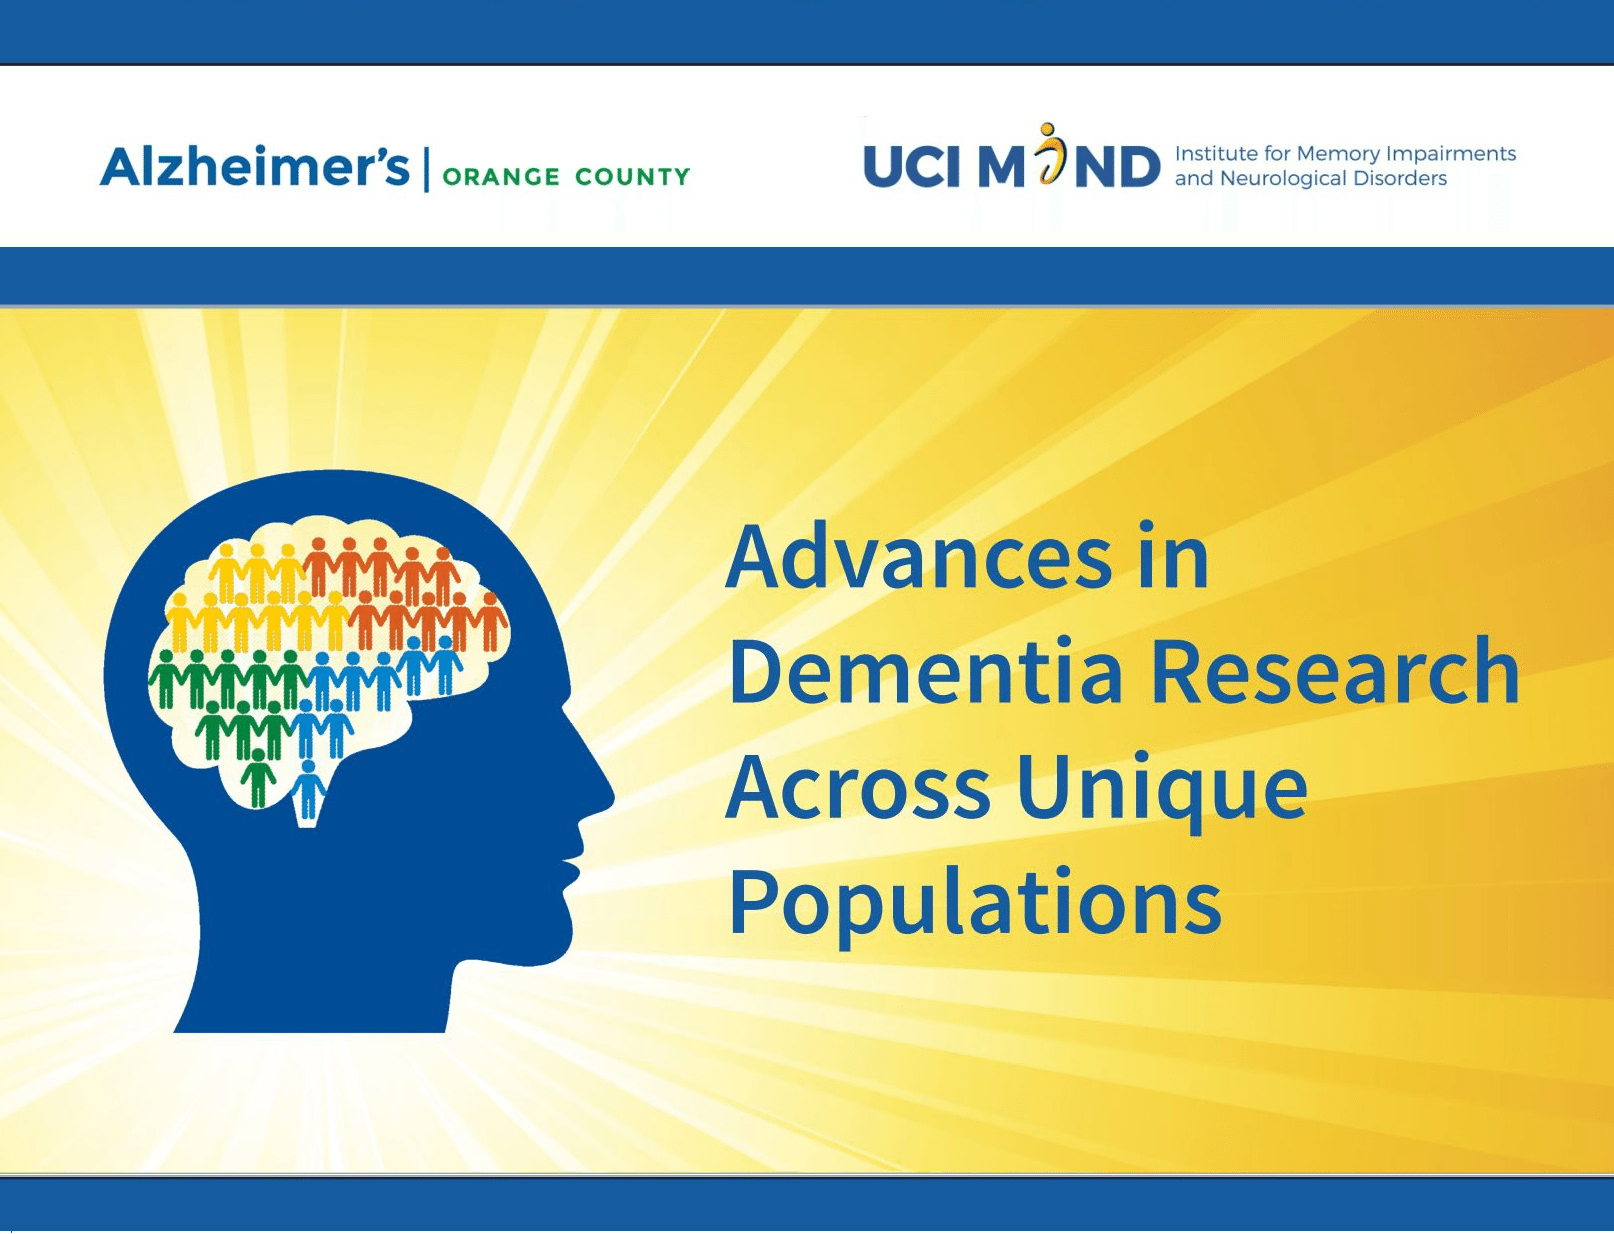 alzheimers reseach paper Alzheimer's disease is the most common form of dementia, affecting more than five million americans in this section, you can find out more about alzheimer's and how you can manage care for yourself or a loved one learn more about alzheimer's disease research funded by brightfocus foundation.